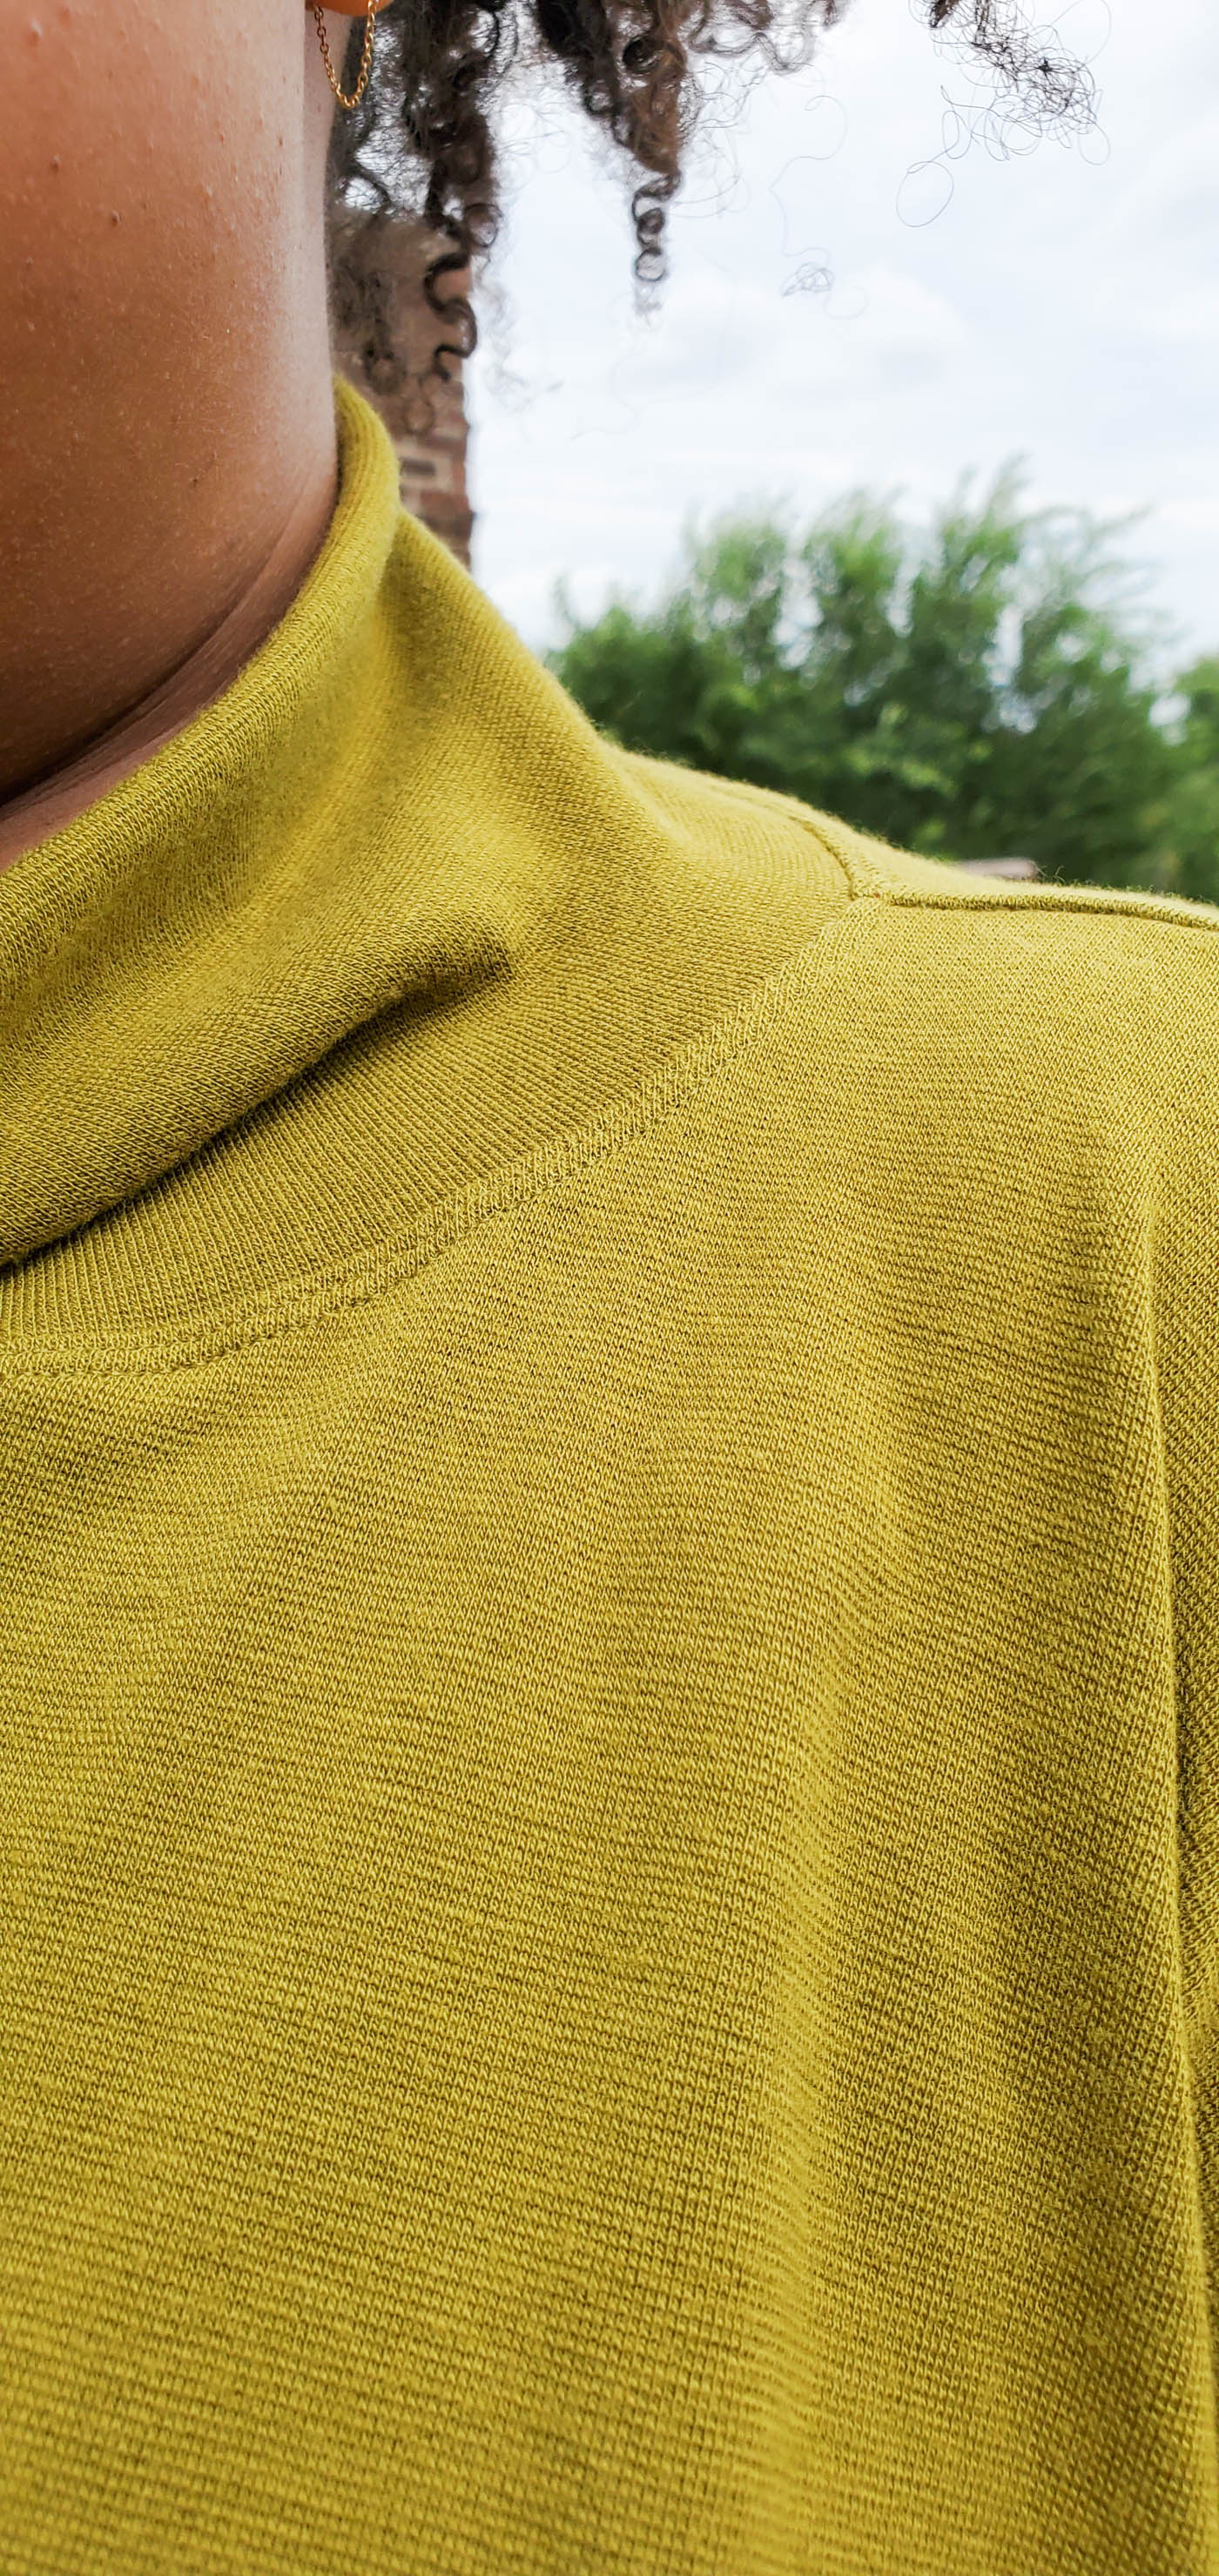 Women wearing a Hosta Tee long sleeve in Bamboo Cotton Stretch Rib in Chartreuse.  Detail photograph of the neckline to show how well the thread matches the fabric.